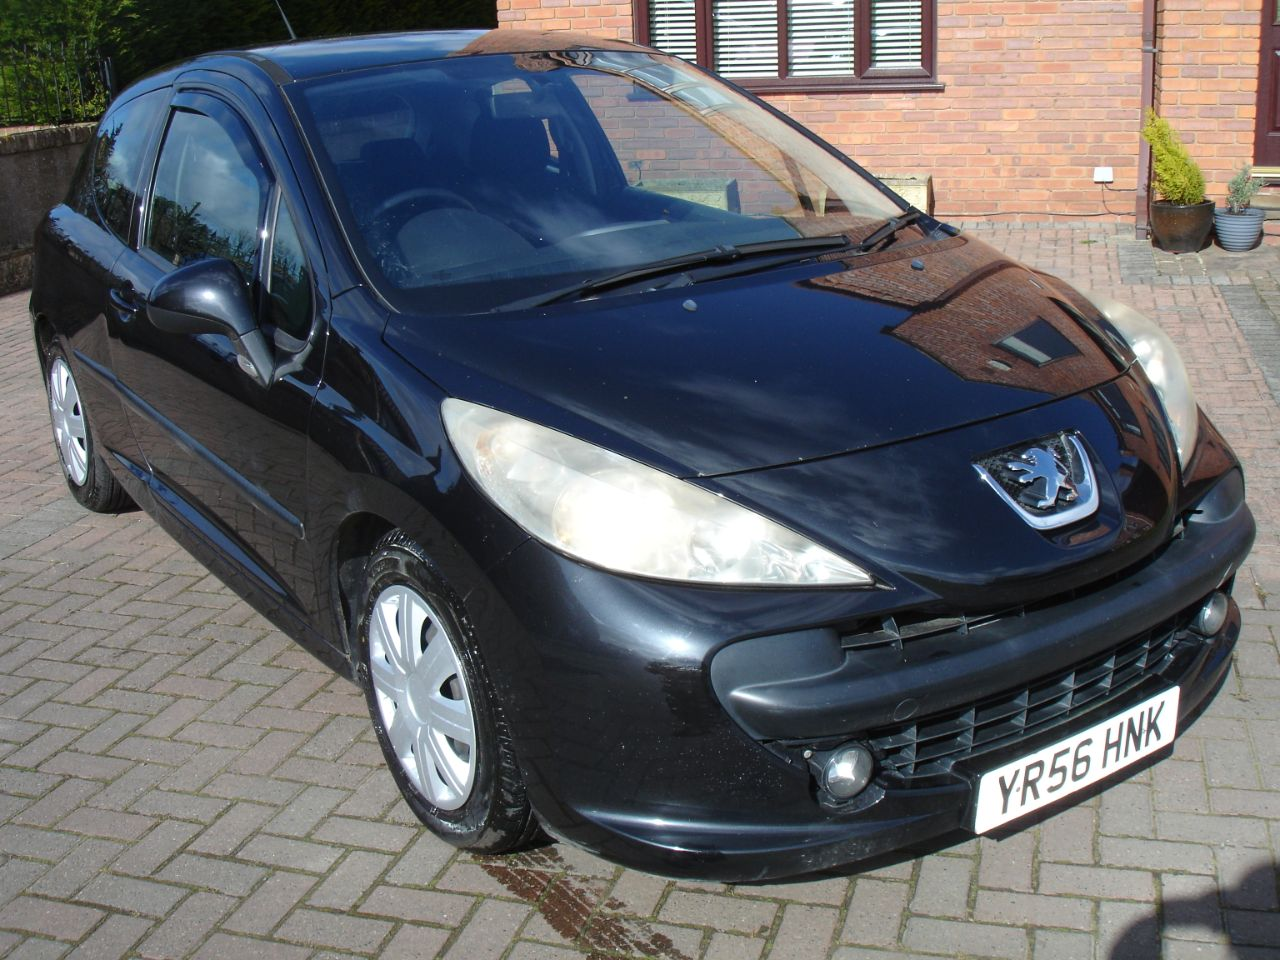 Peugeot 207 1.4 16V Sport 3dr Hatchback Petrol Black at Level Pitch Selby